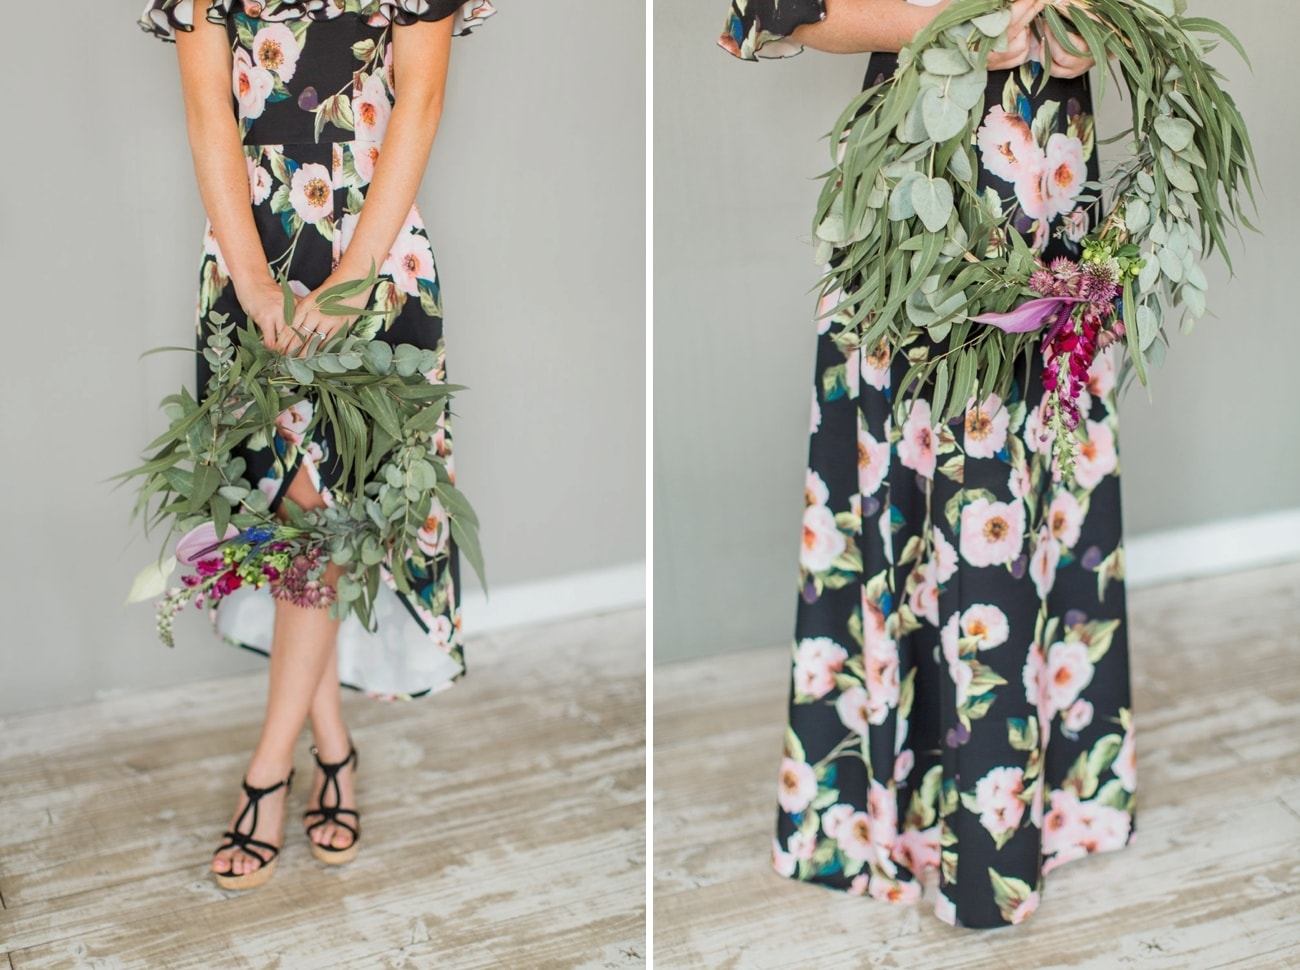 Black Floral Bridesmaid Dresses | Image: Grace Studios